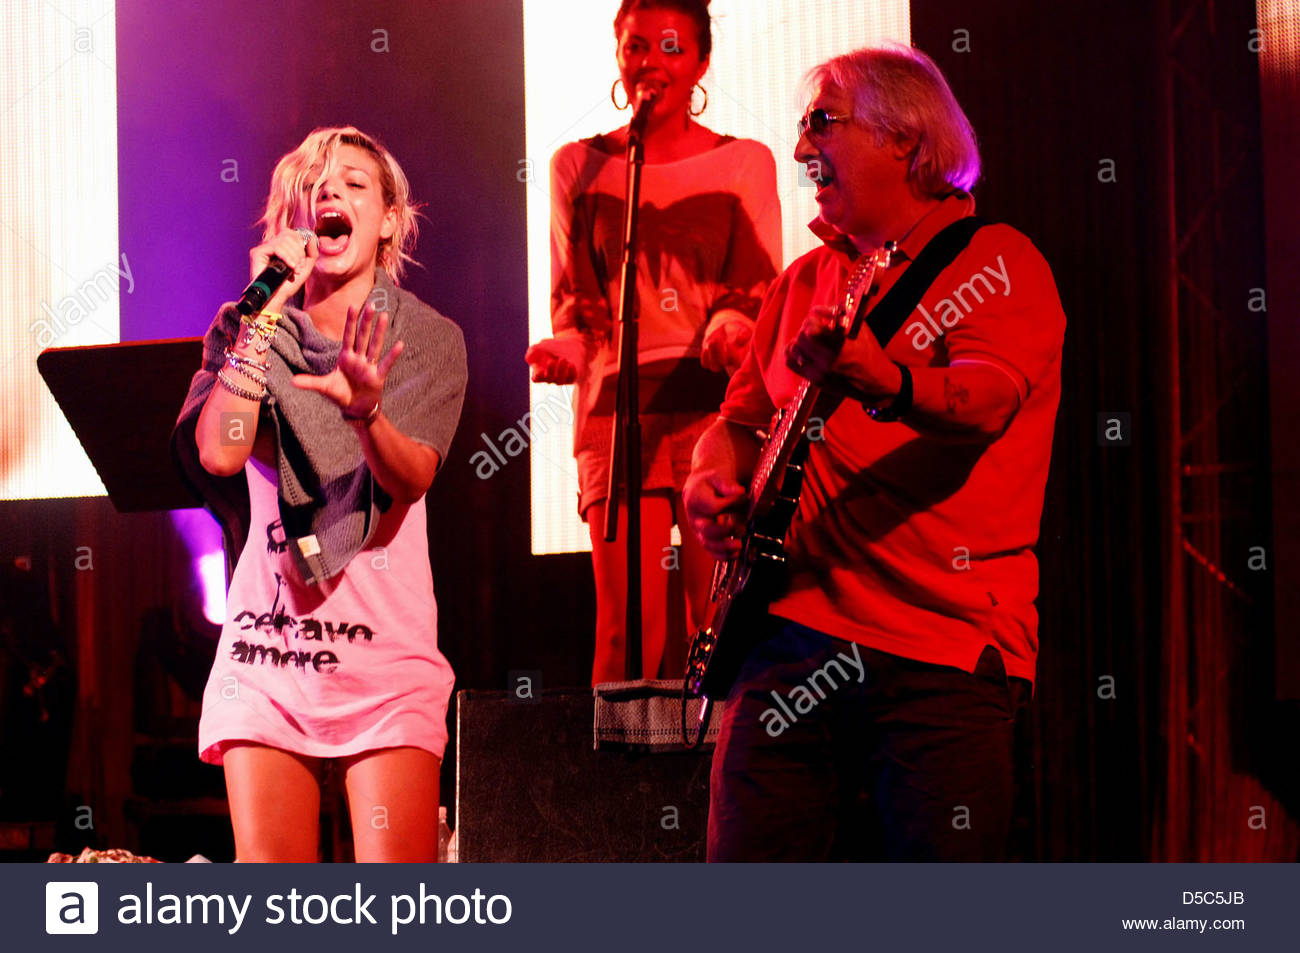 emma marrone,the dress rehearsal of the concert with his father on guitar - Stock Image